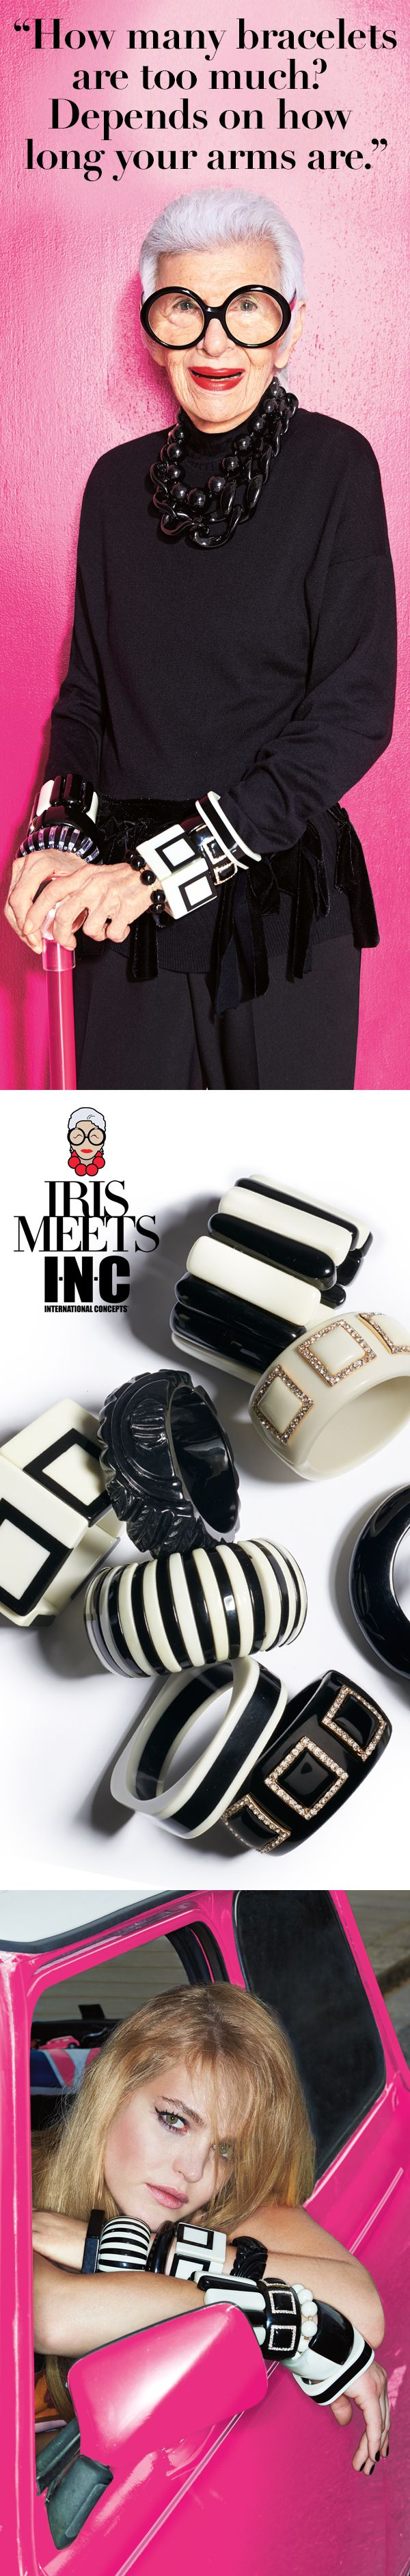 What would Iris Apfel do? When it comes to bracelets, the more the merrier! Stack 'em, mix 'em, match 'em, pile 'em on! You can never have too many—because accessories can add a whole new attitude to any outfit. Work it!